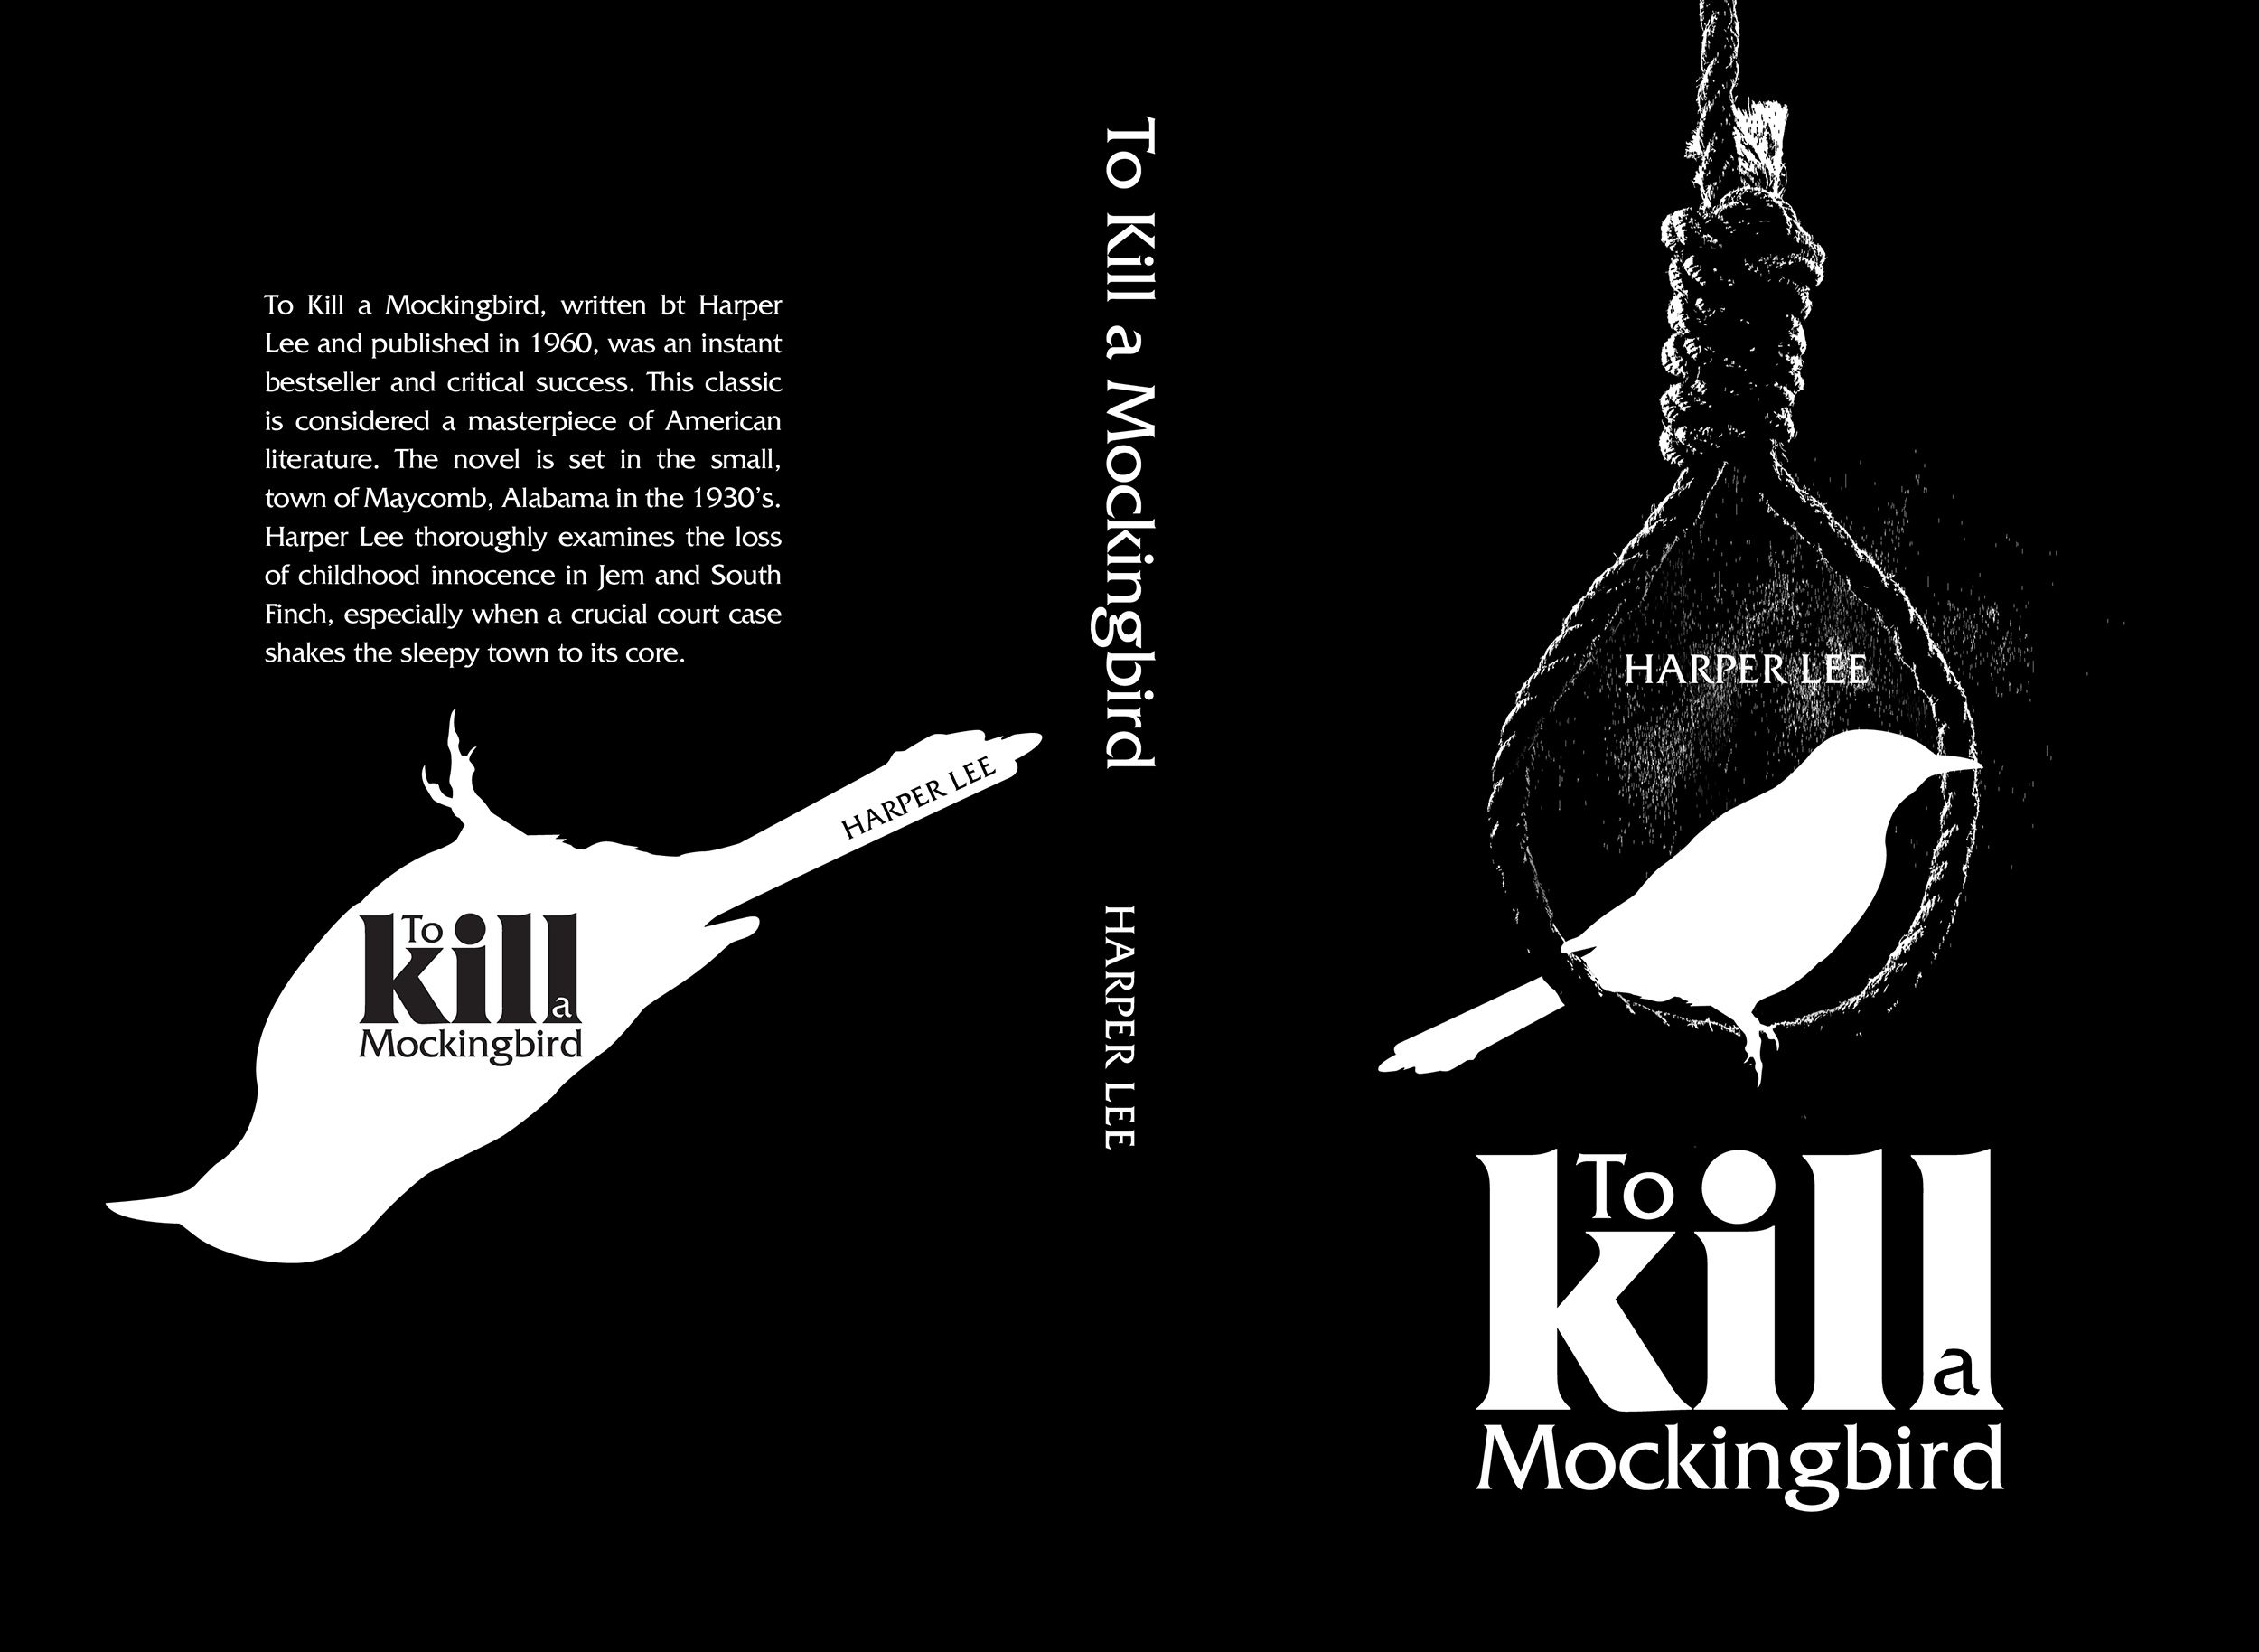 Modern American Book Cover Design : To kill a mocking bird book covers